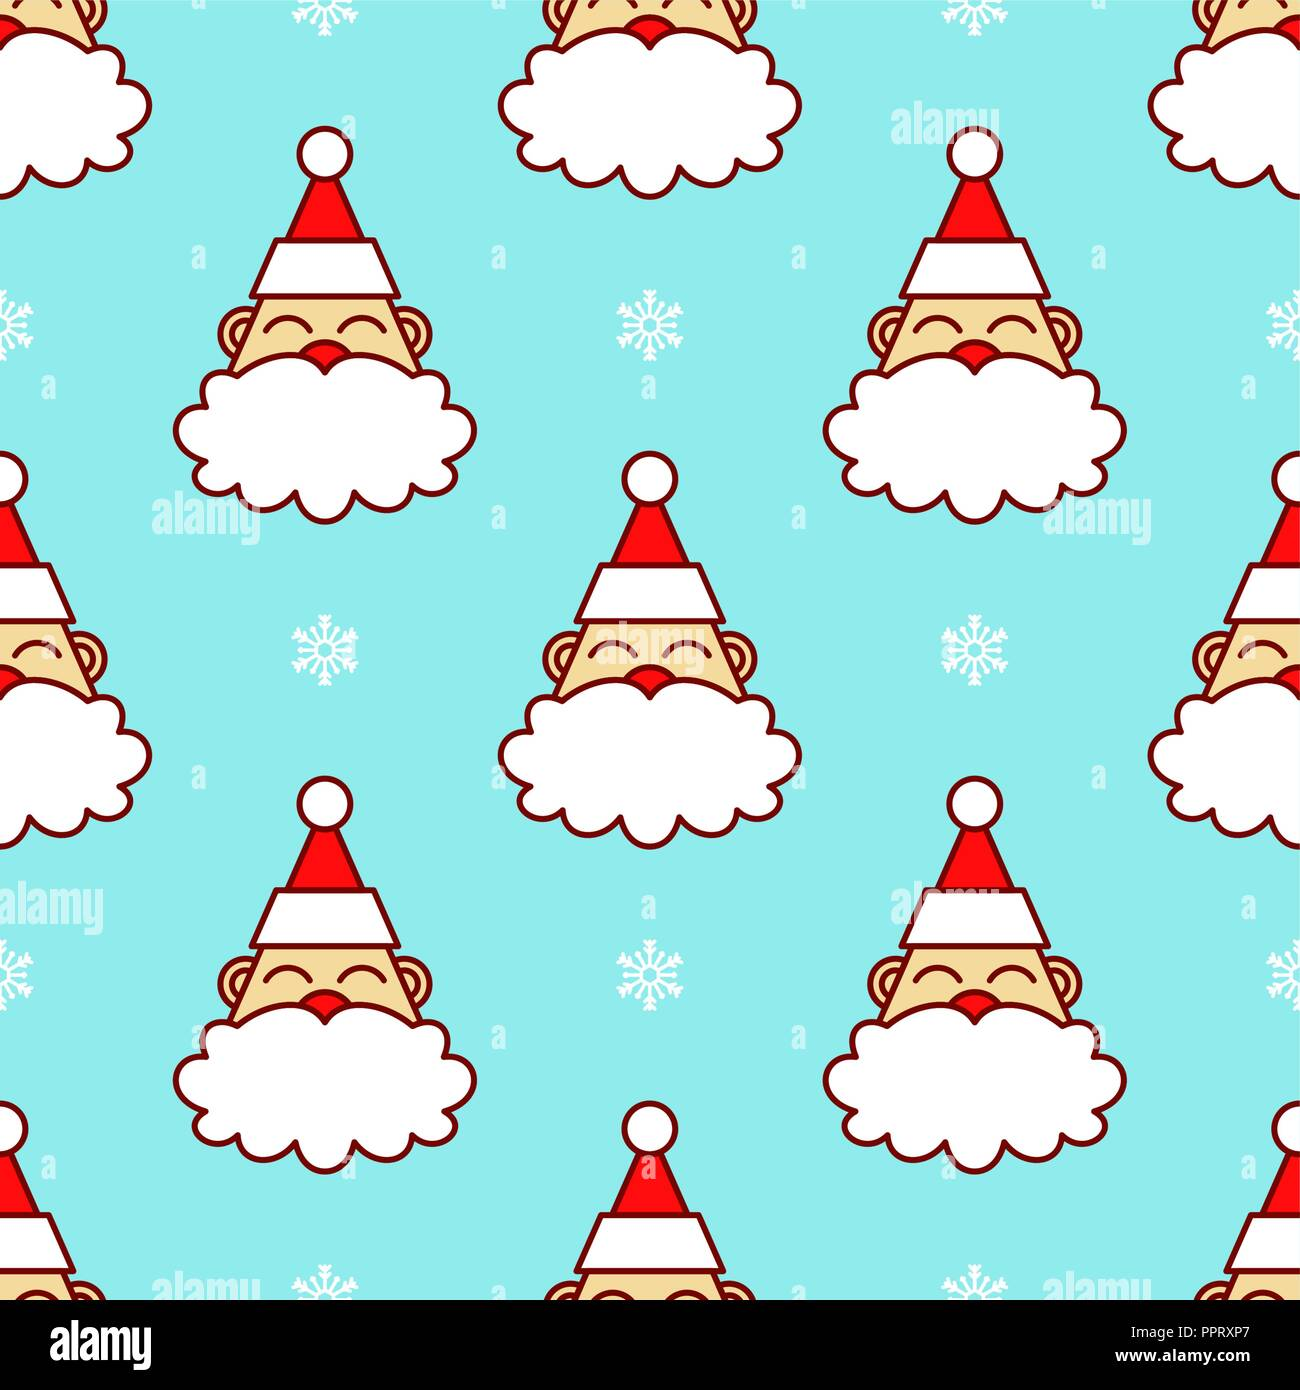 Christmas Backgrounds Cute.Santa Claus Head In Snow Seamless Pattern This Cute Pattern